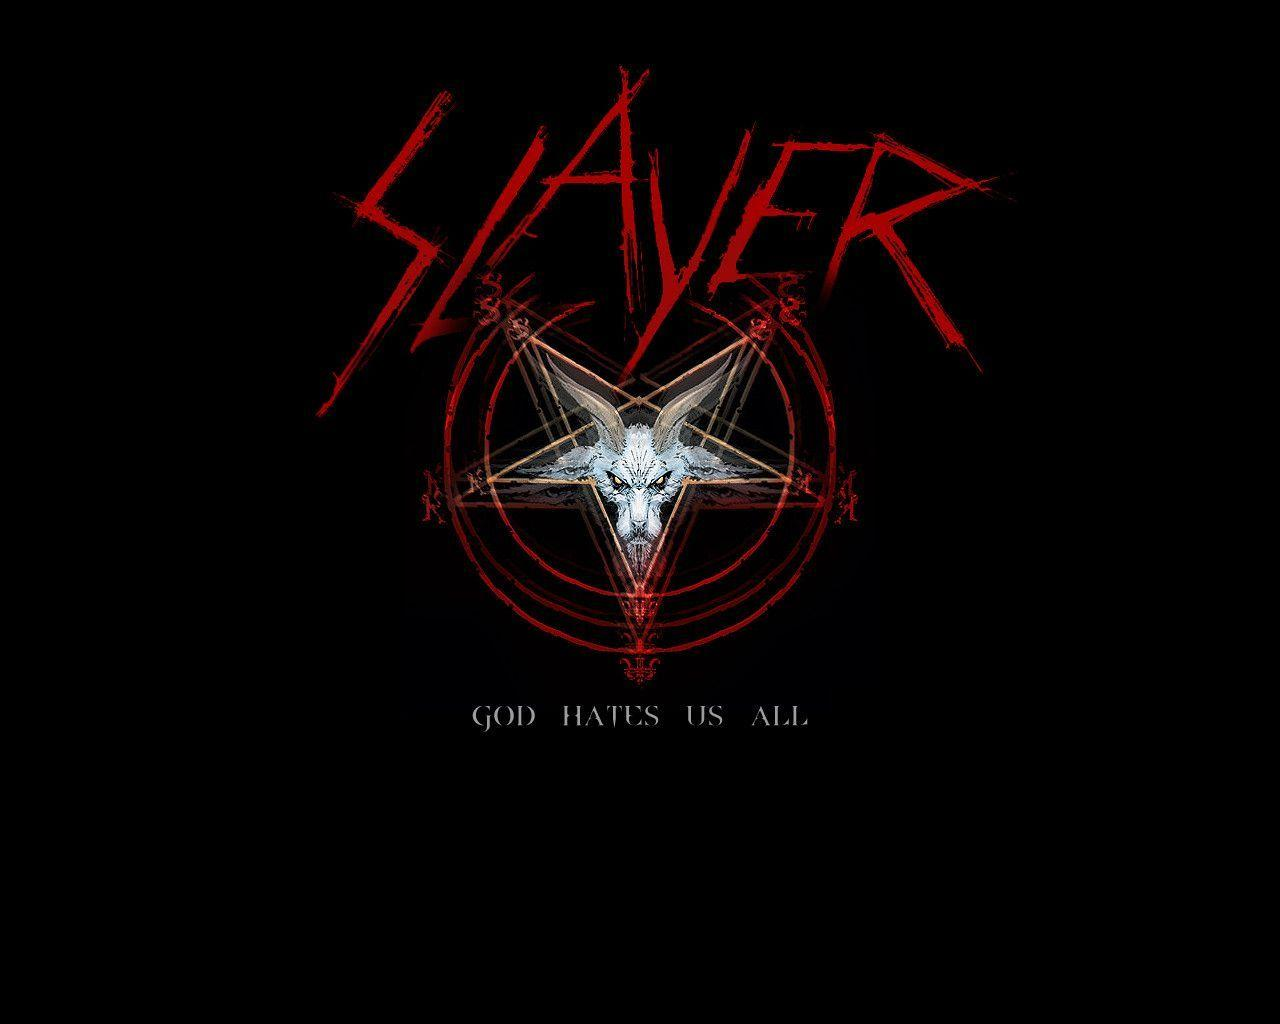 Wallpapers For > Slayer Wallpapers Hd